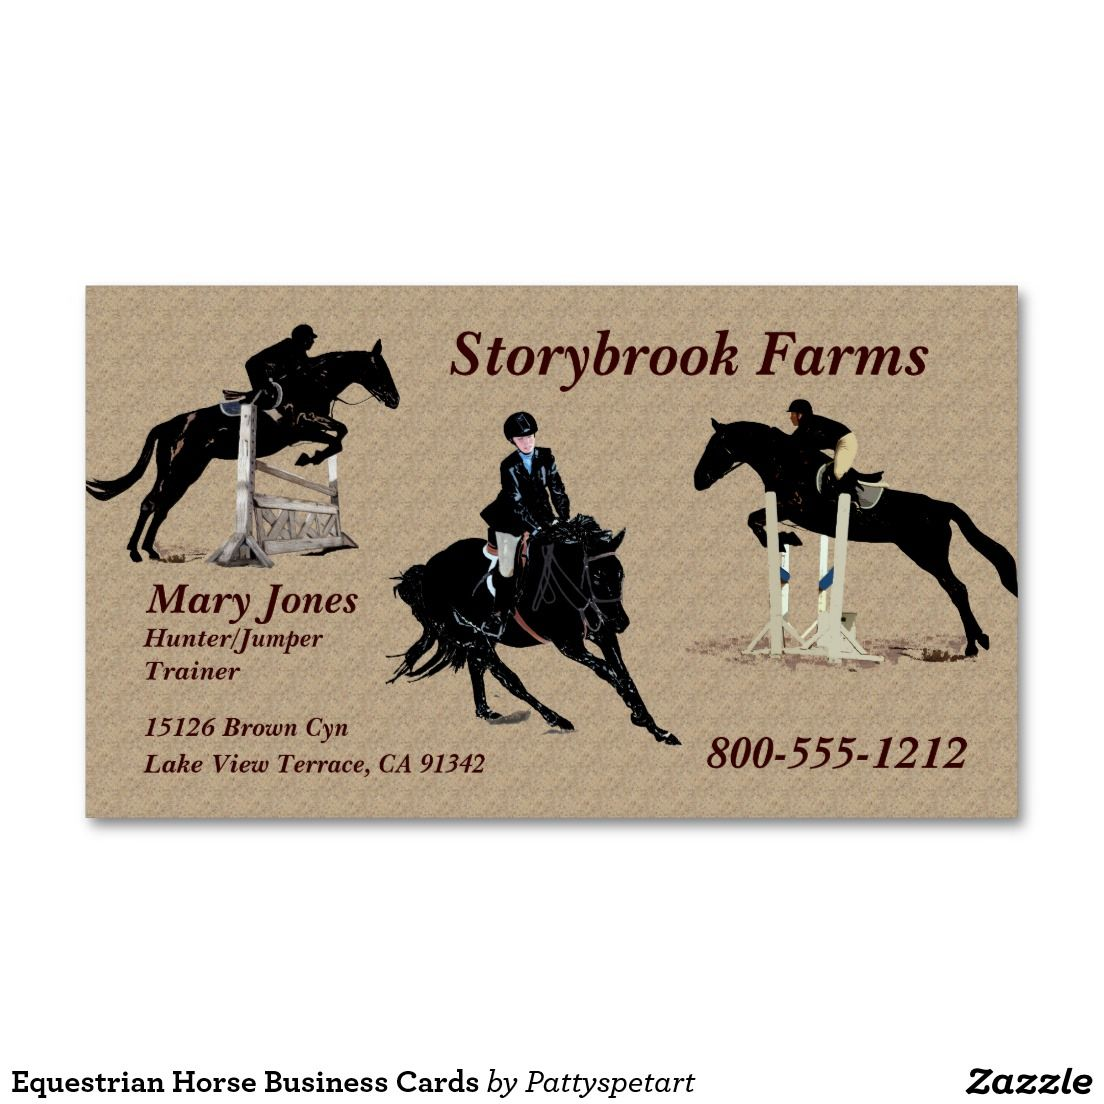 Equestrian Horse Business Cards   Pinterest   Business cards and Horse